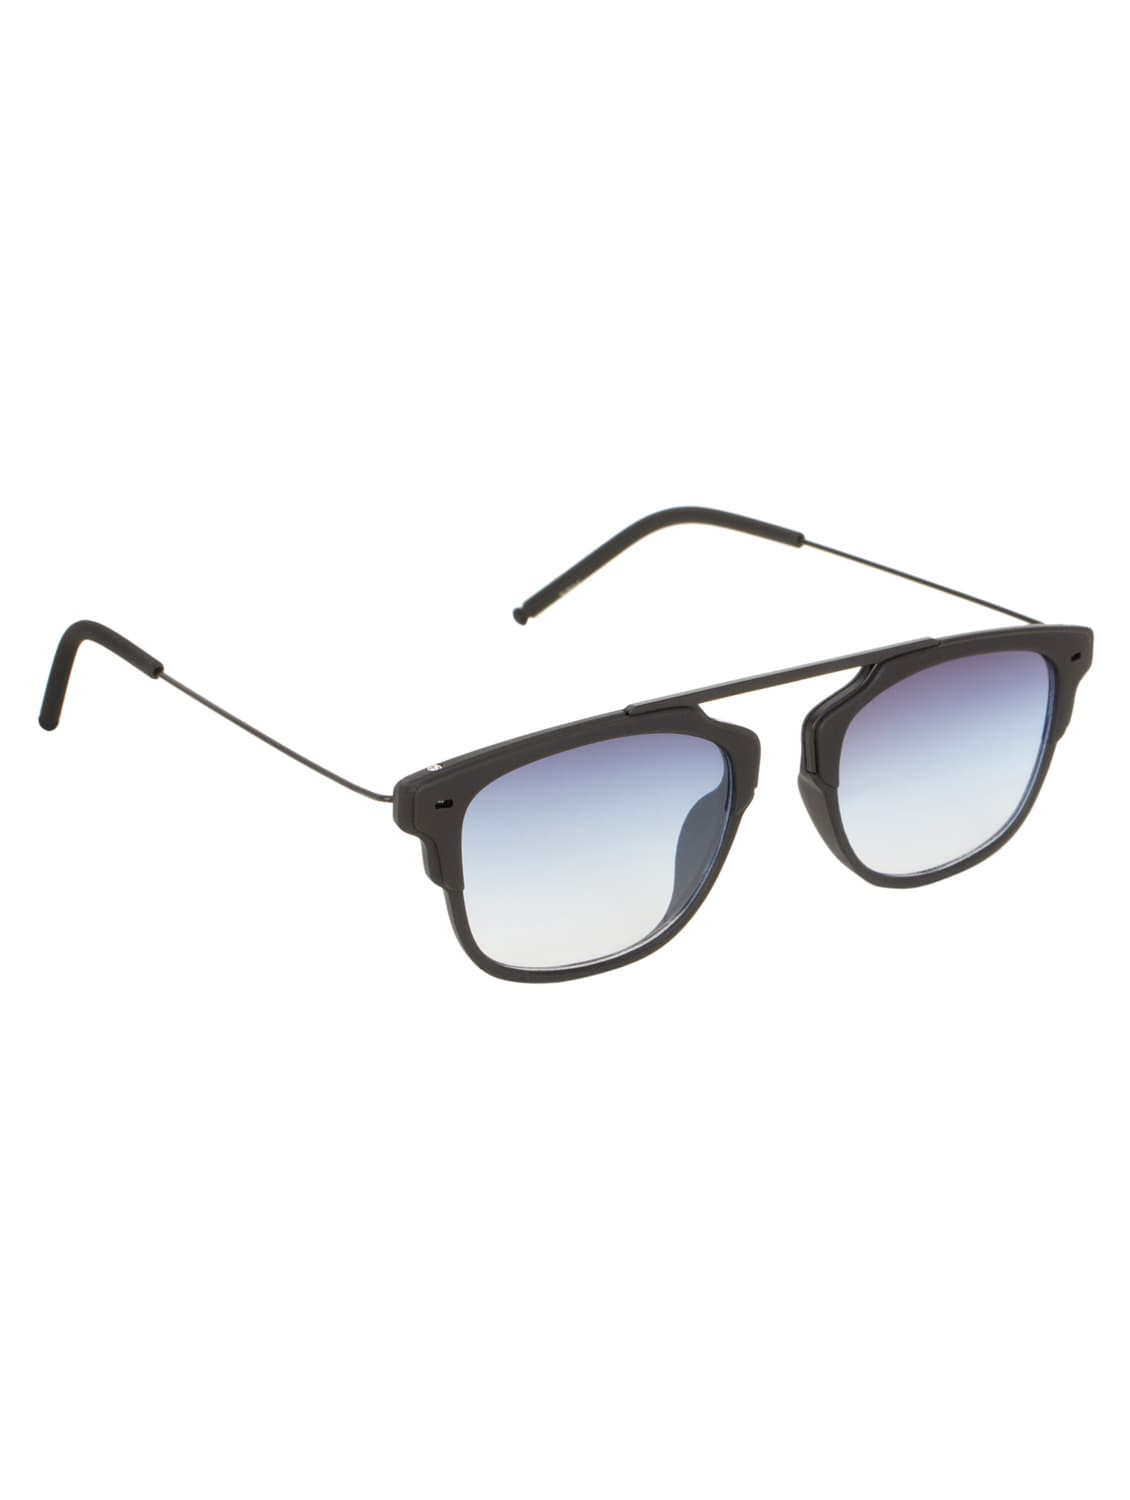 bc4a1351bb Buy Adine Unisex Blue Rectangle Sunglasses by Adine - Online shopping for  Sunglasses in India